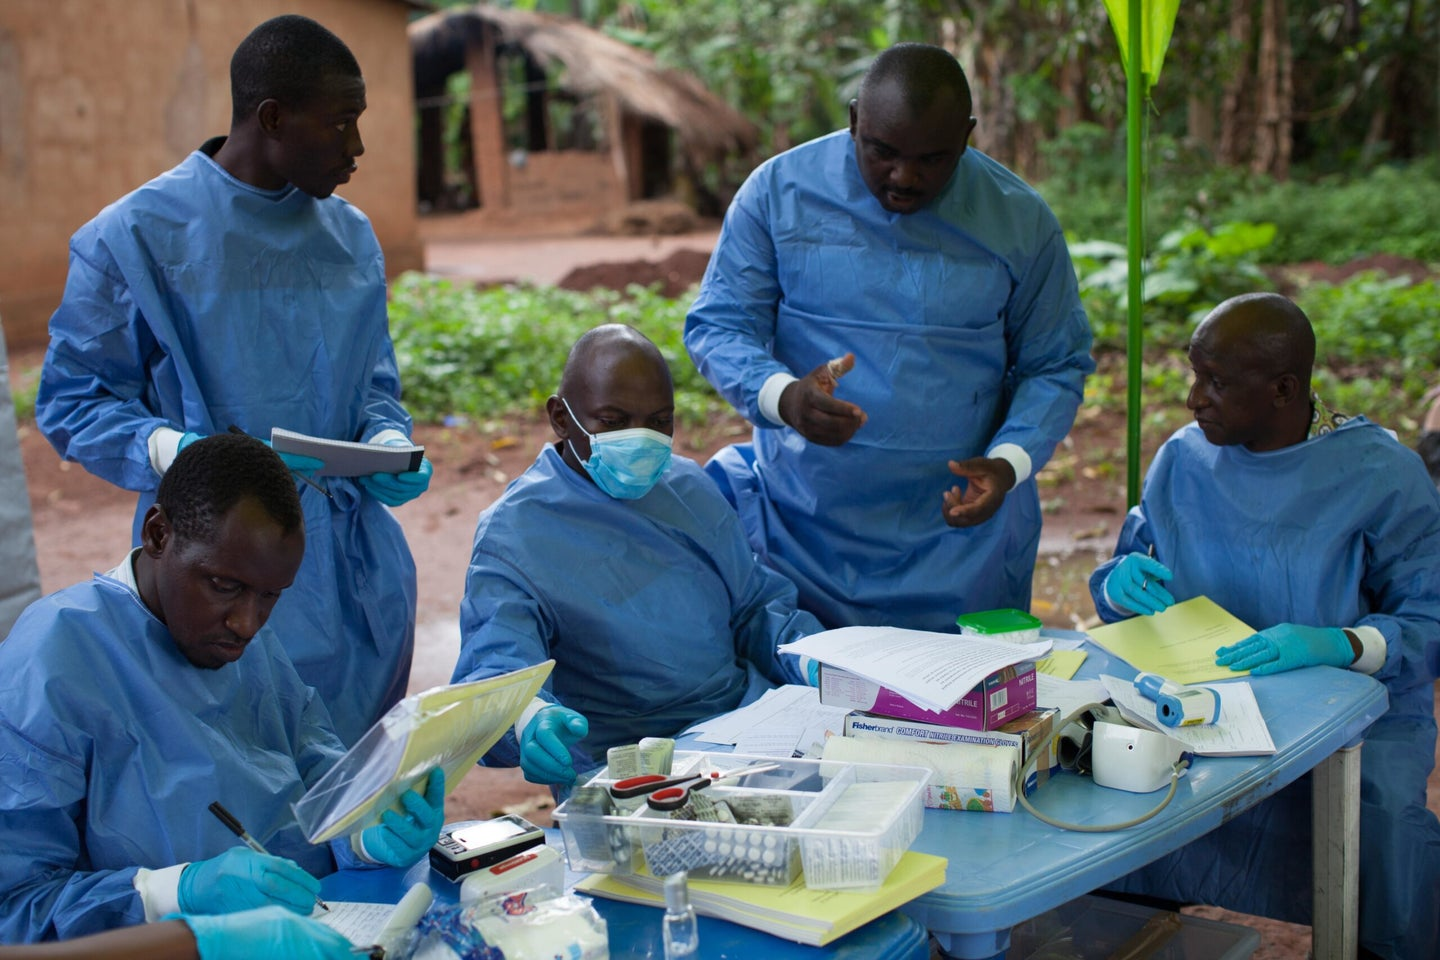 Ebola hasn't been cured yet, but two experimental drugs are showing significant progress